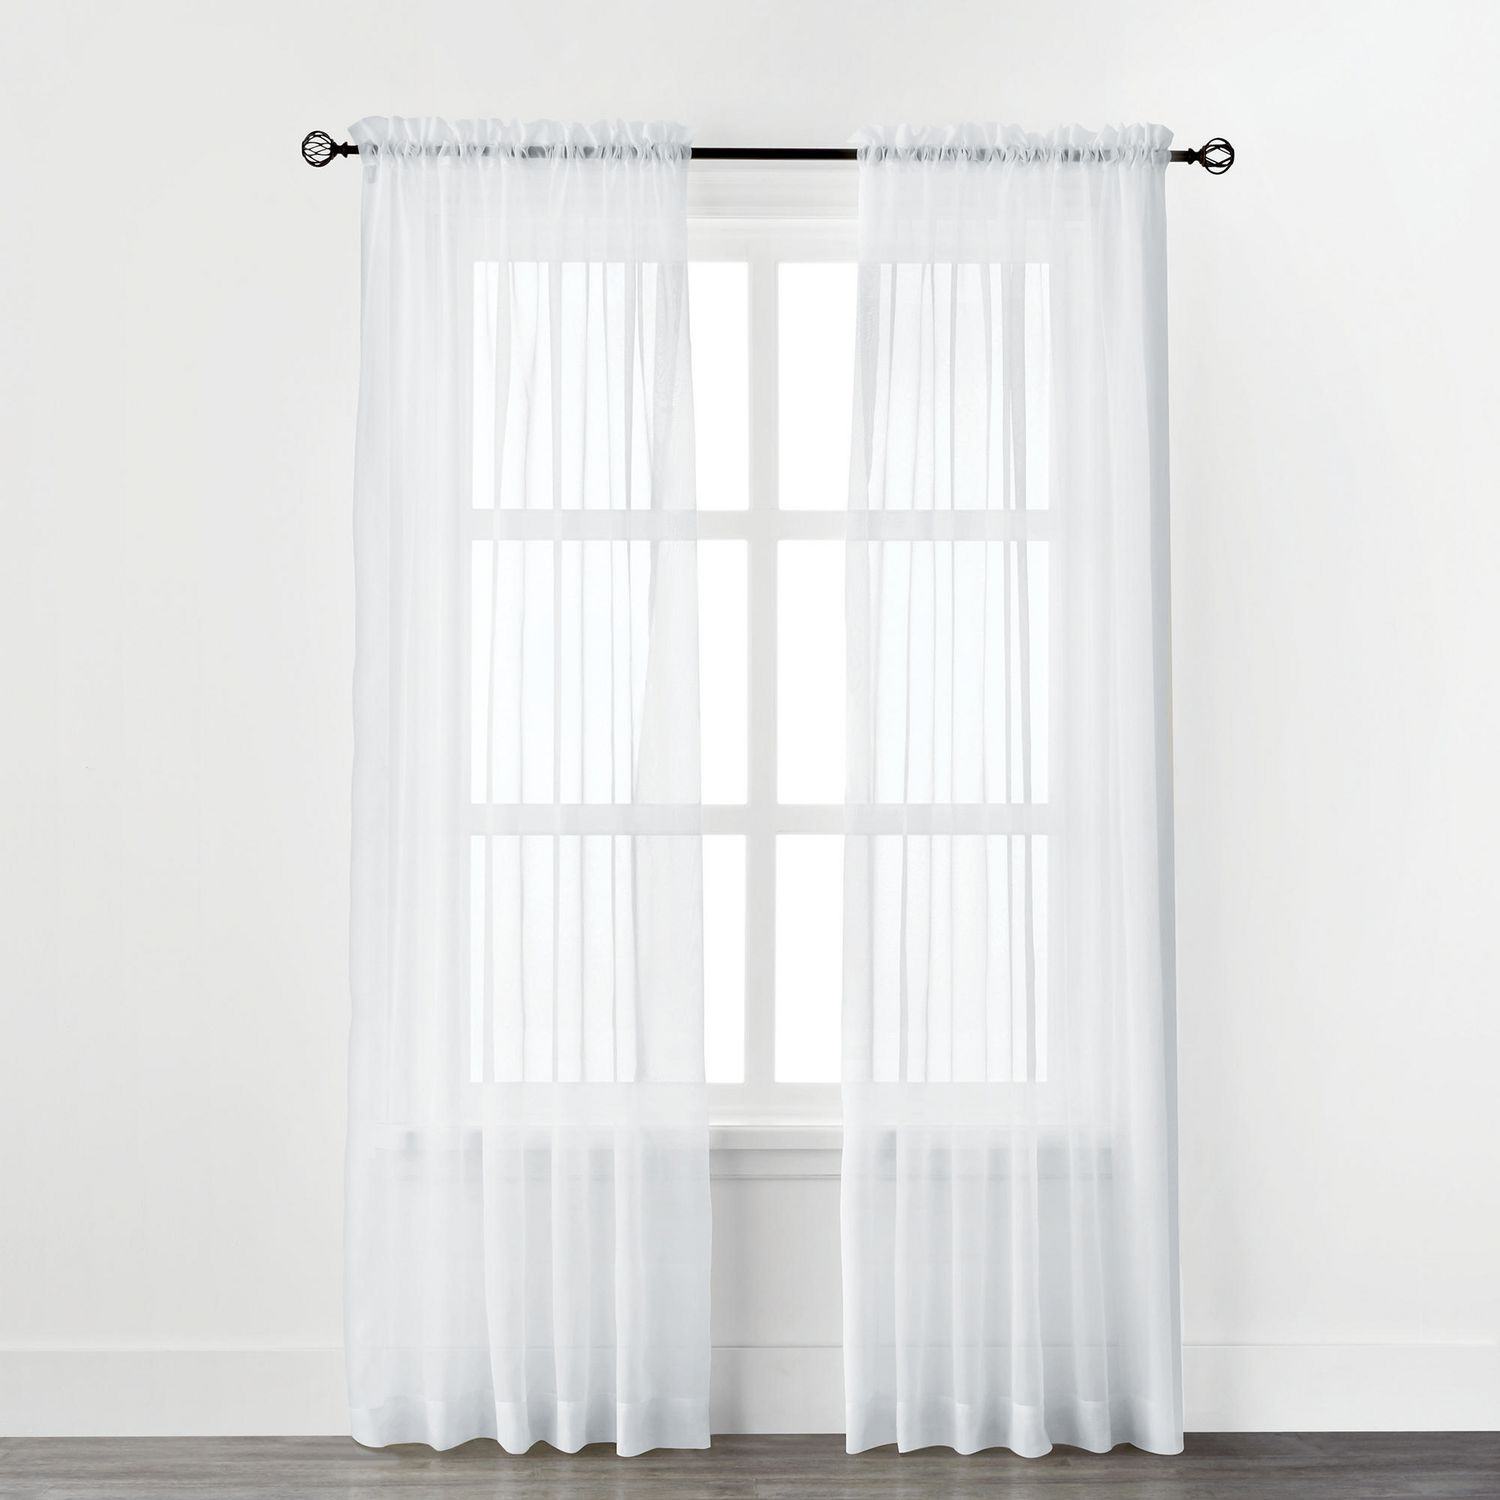 Curved Curtain Rods for Your Curtain Design Ideas: Curved Curtain Rods | Shower Curtain Liner For Curved Rod | Diy Curved Shower Curtain Rod